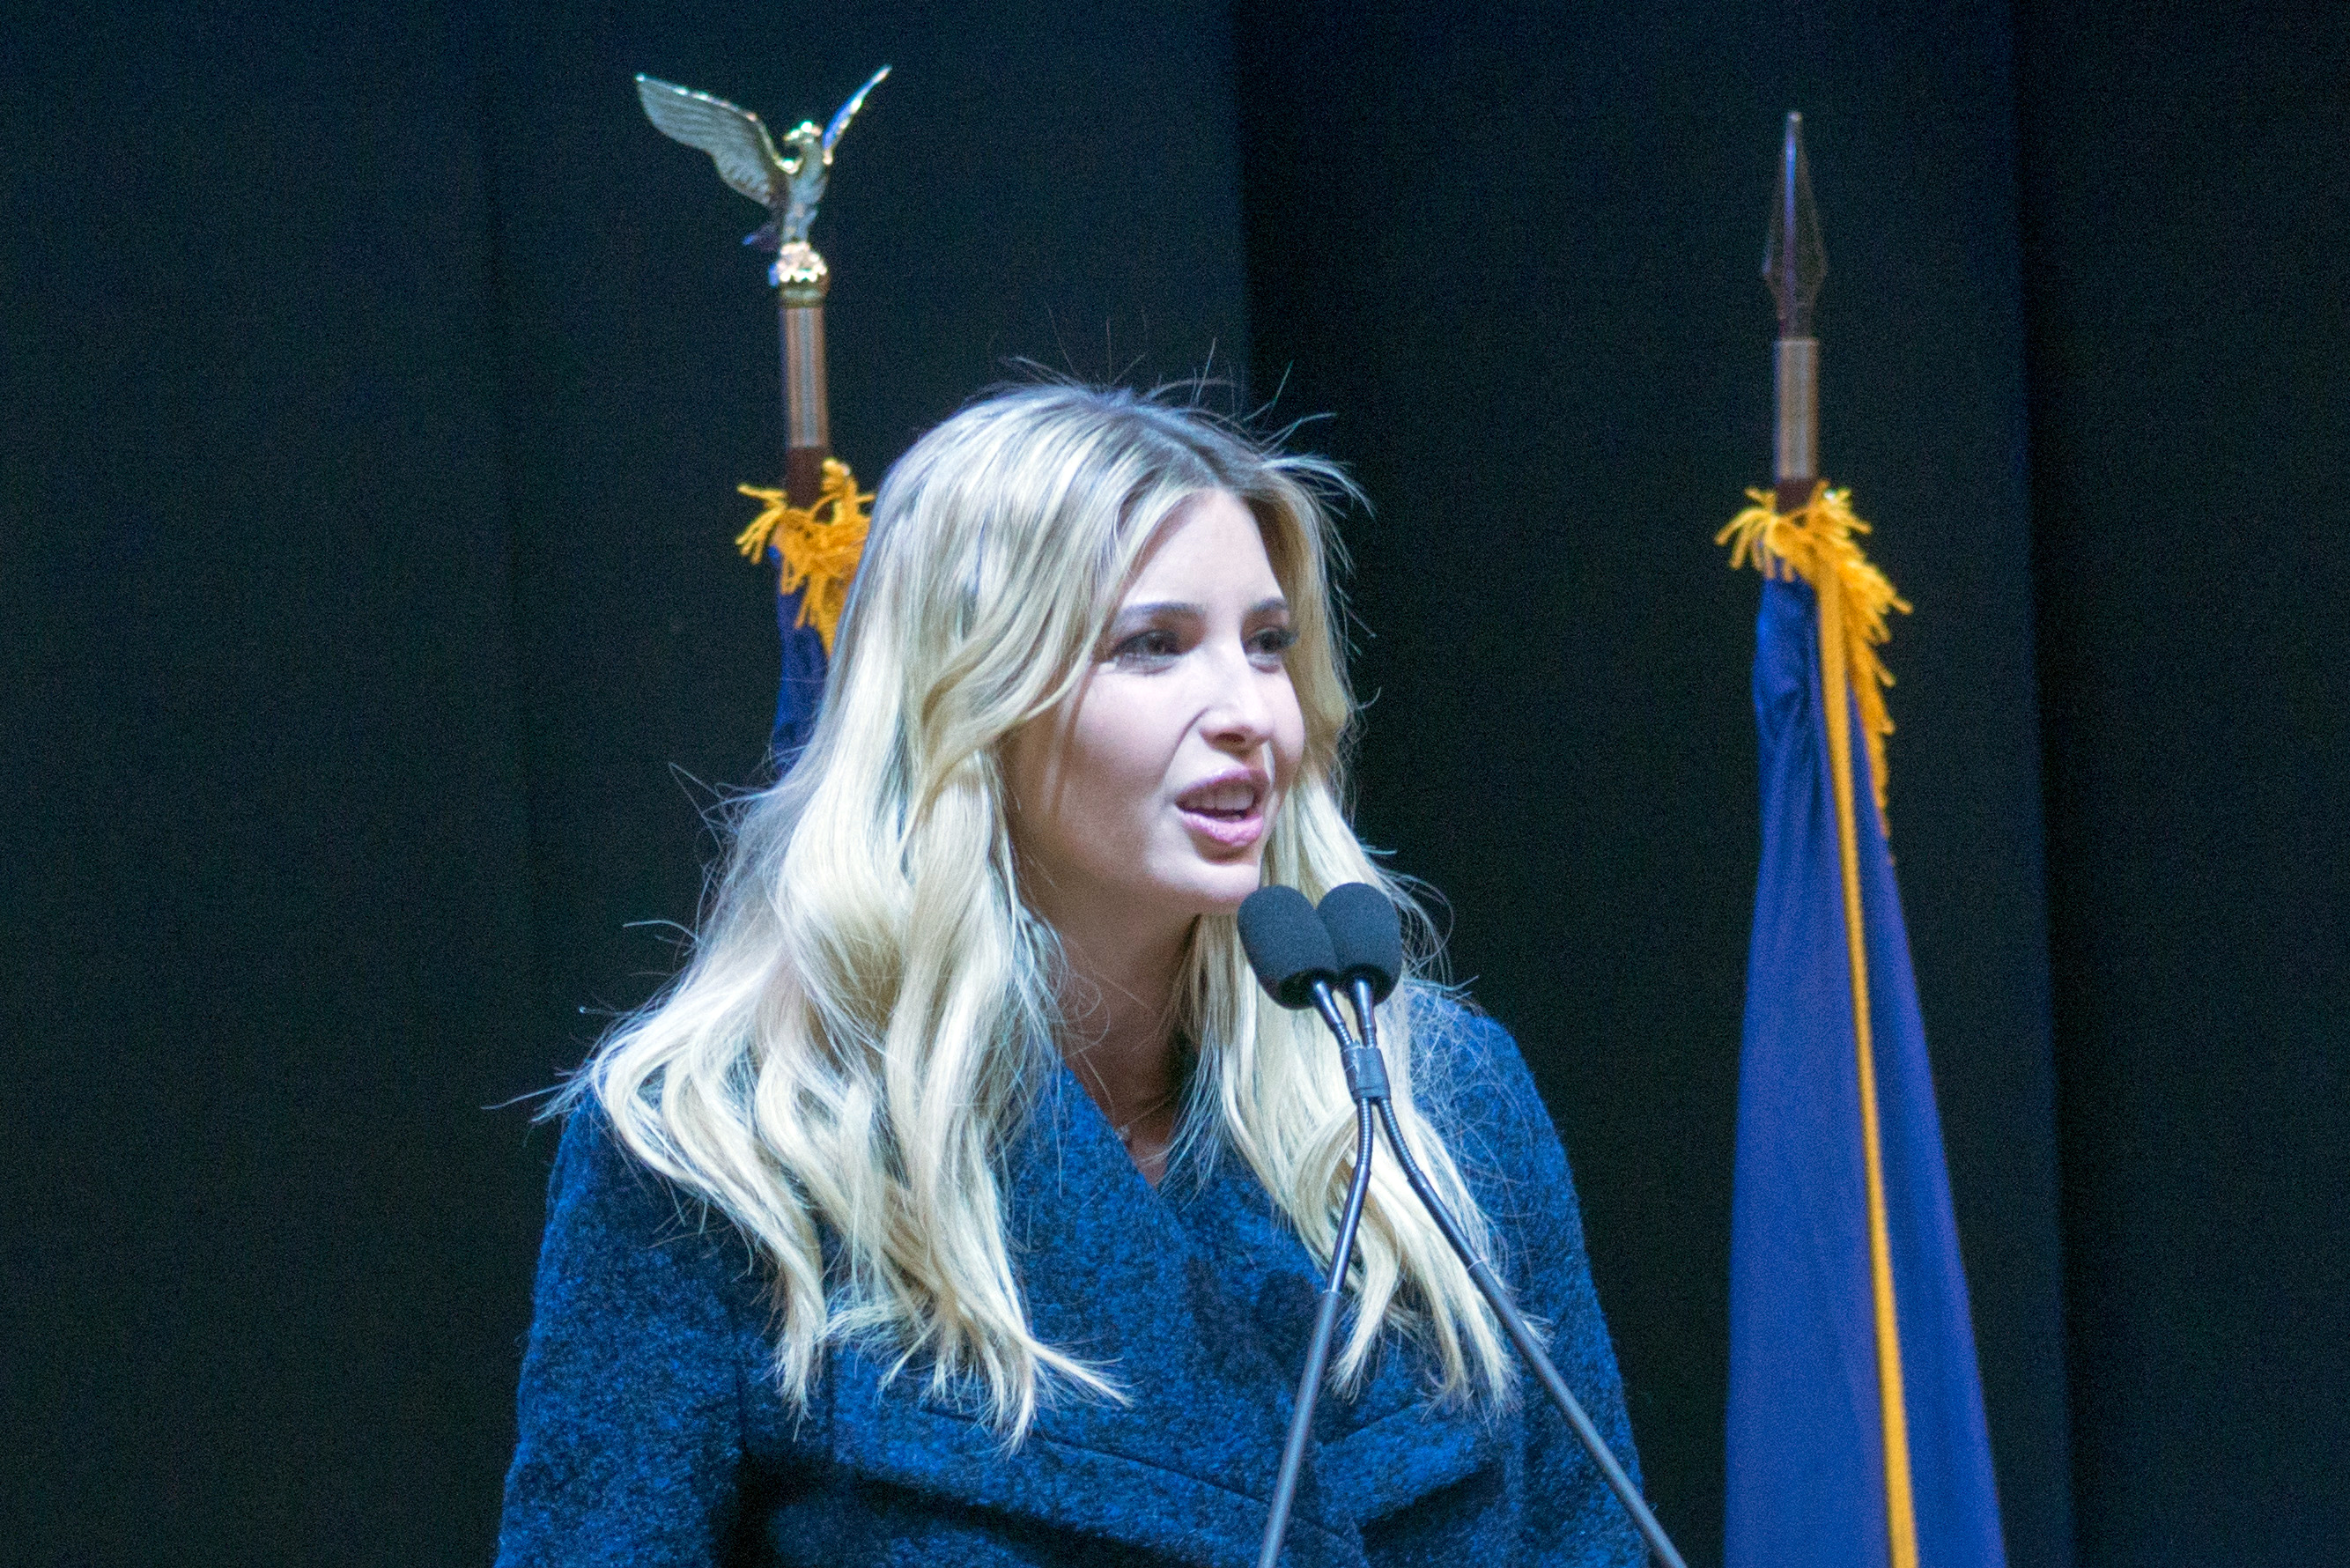 Ivanka Trump at a rally for her father at Verizon Wireless Arena in Manchester, New Hampshire, February 8, 2016